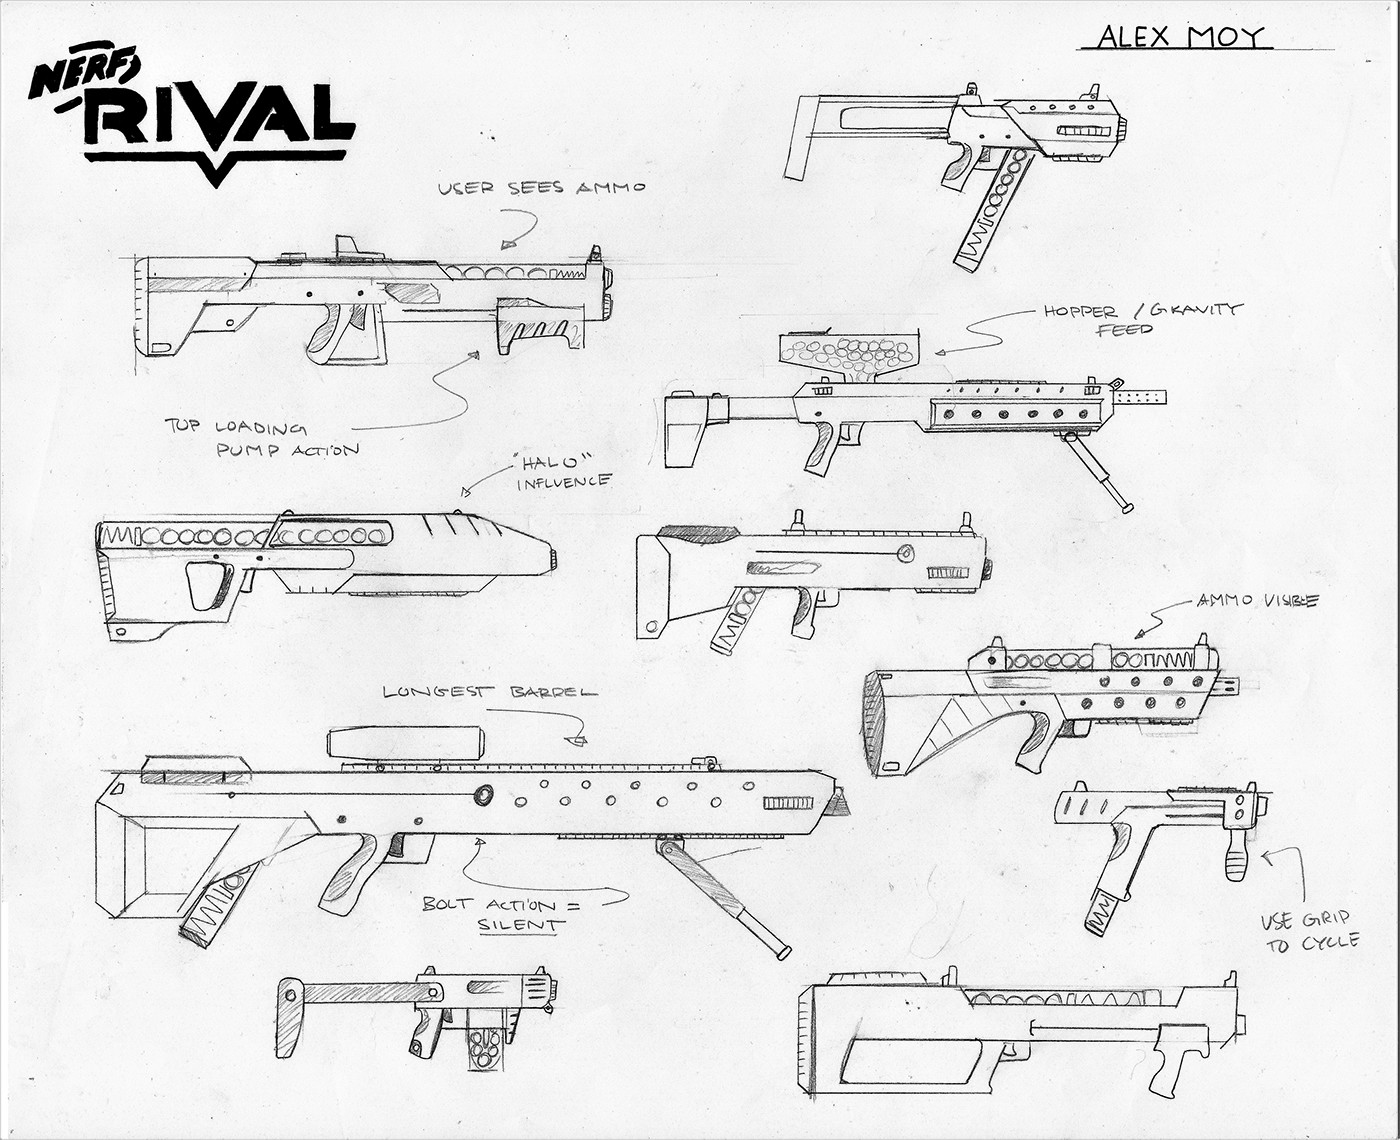 Design the newest iteration of the NERF RIVAL line